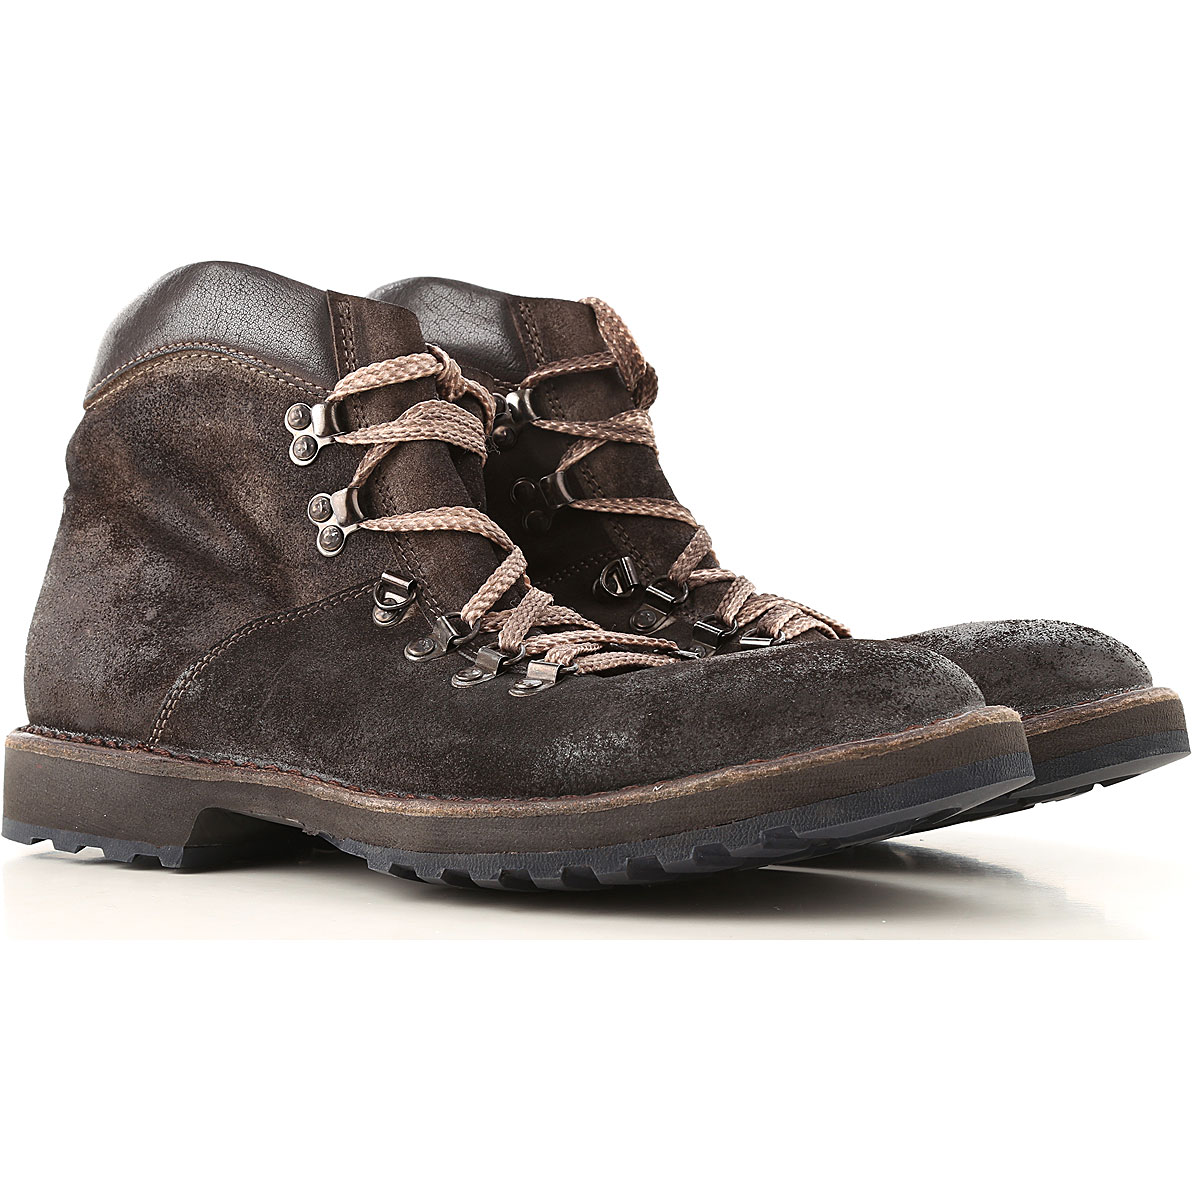 Image of Moma Boots for Men, Booties, Dark Brown, Leather, 2017, 10 7.5 8 9